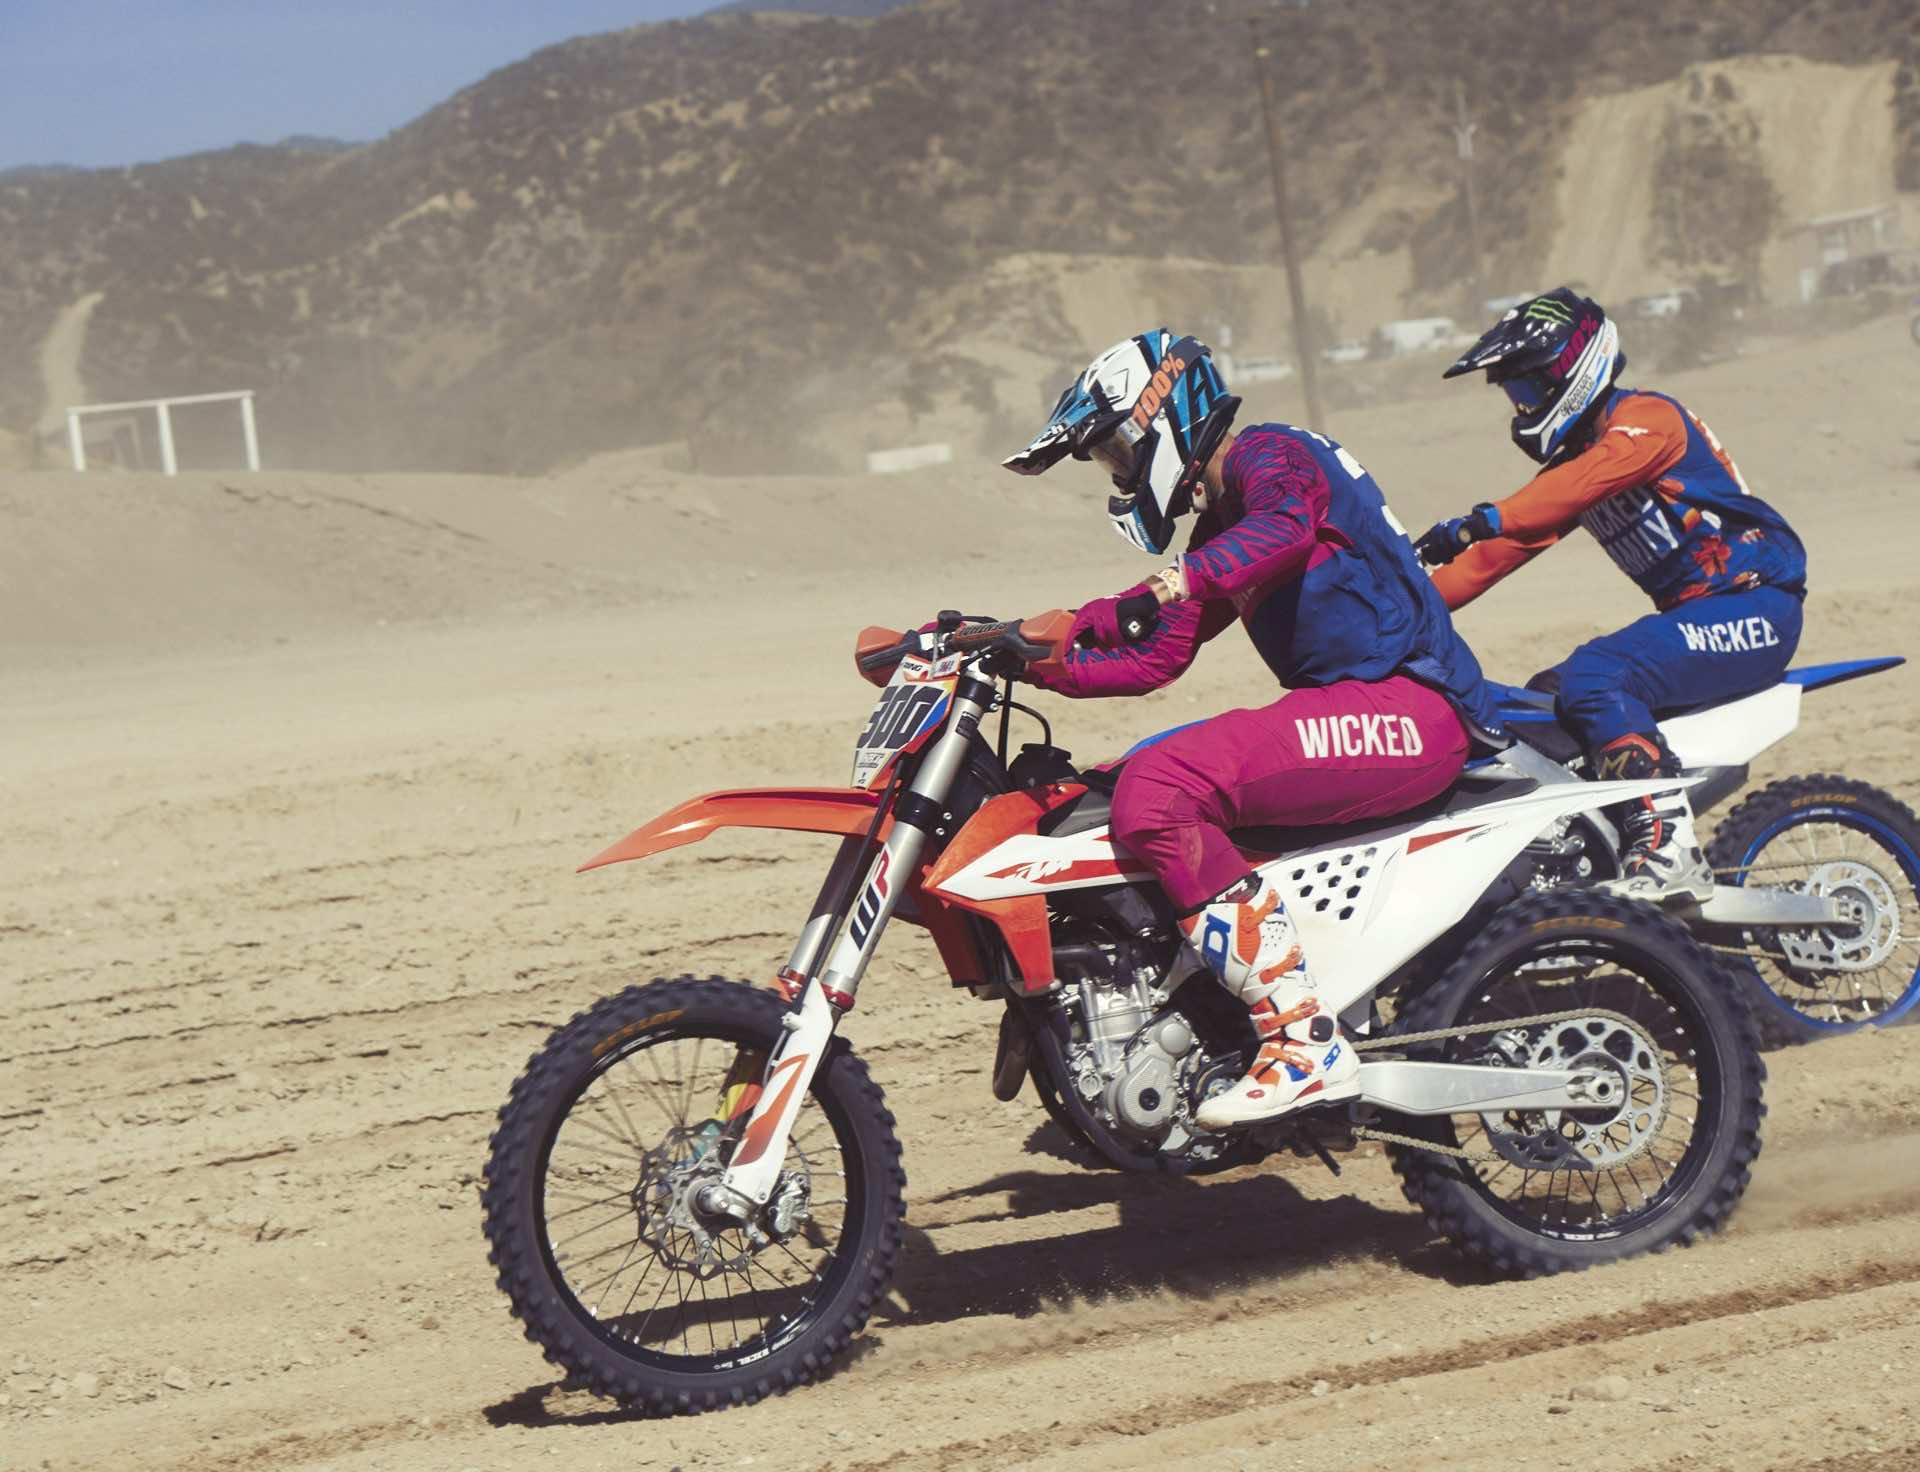 Dirt bike riding at glen Helen